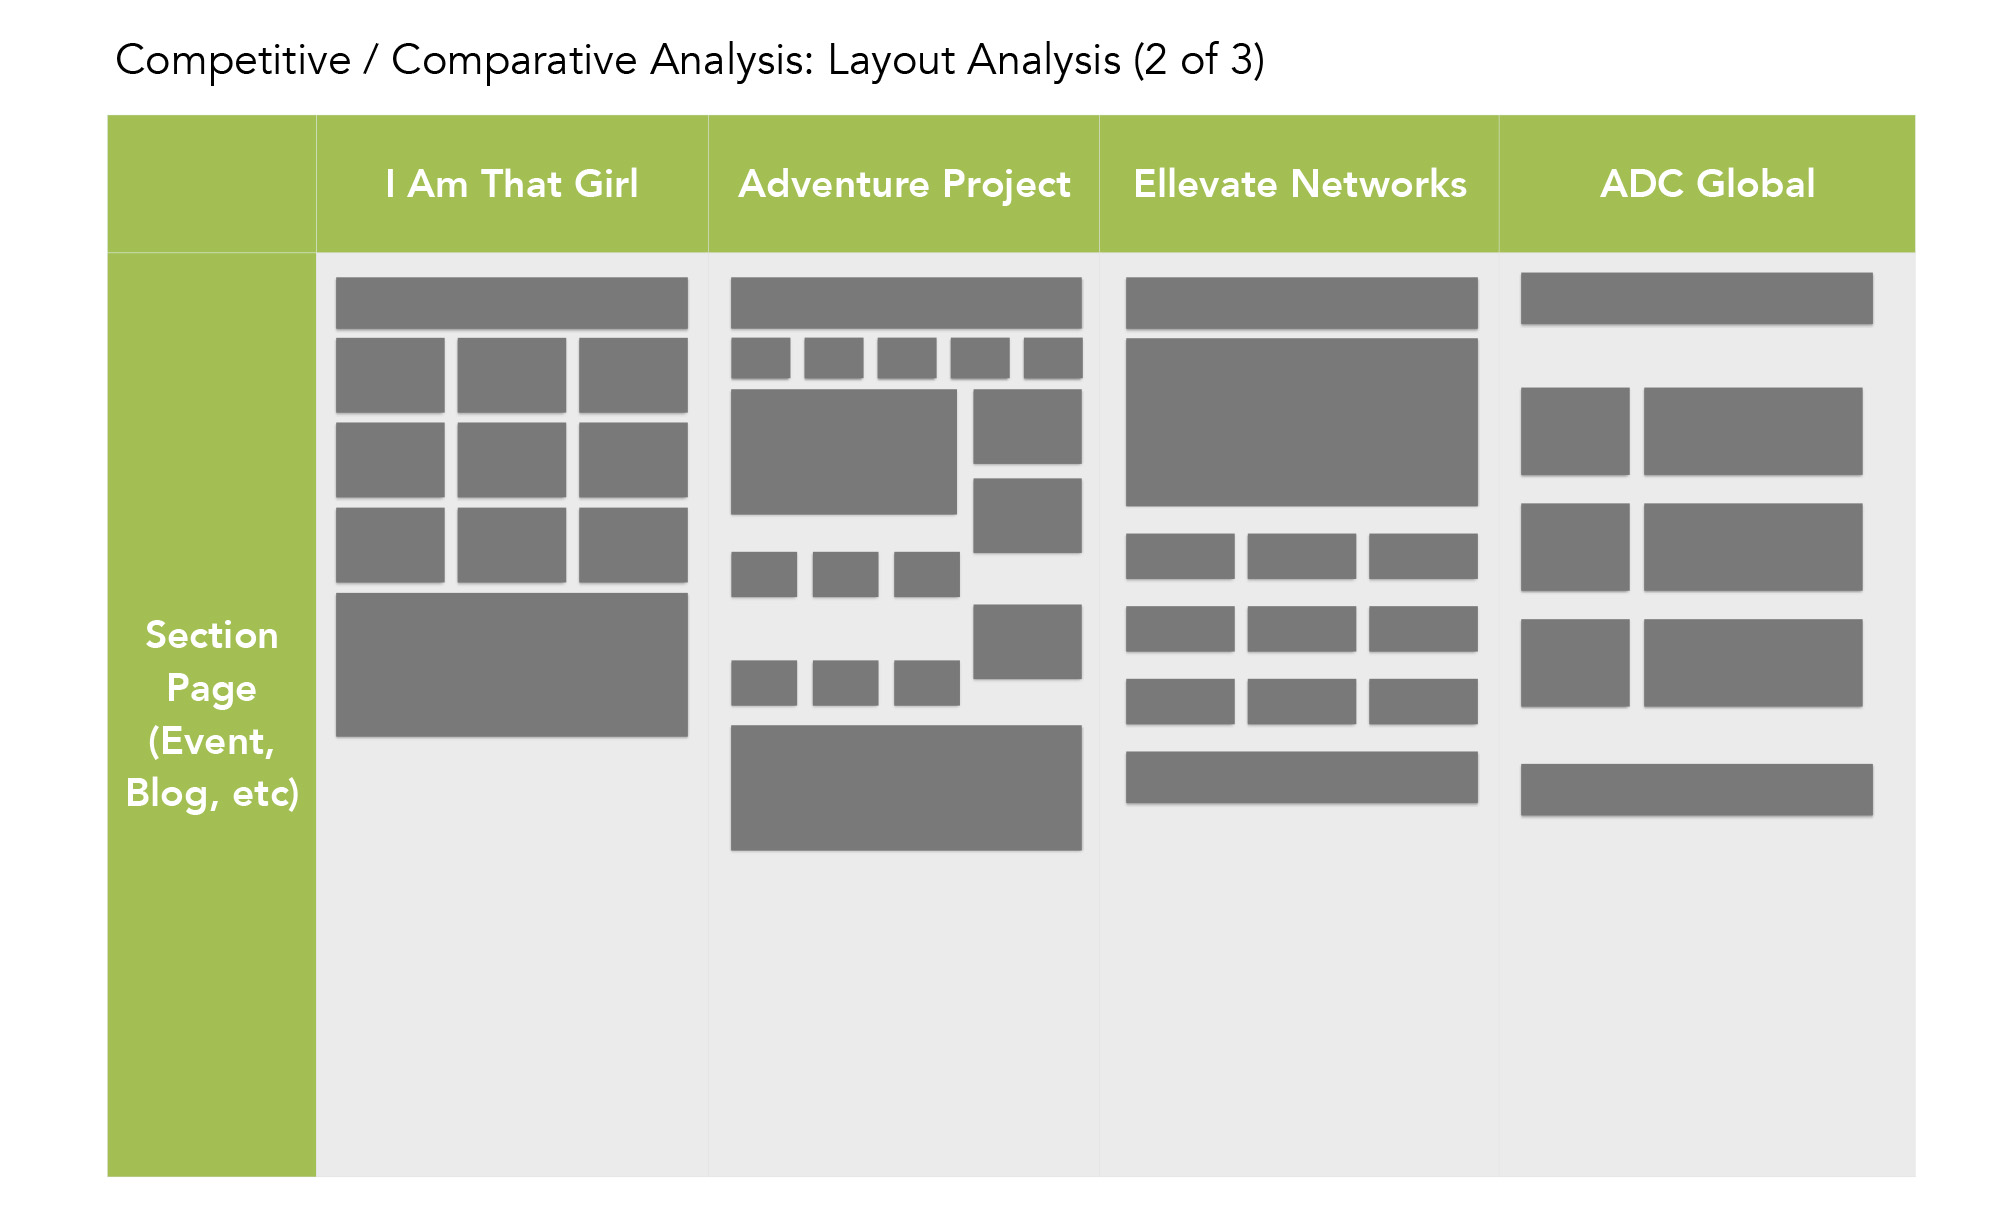 NYWSE_Competitive_Analysis_092616_0001_NYWSE_Deliverables 22.jpg